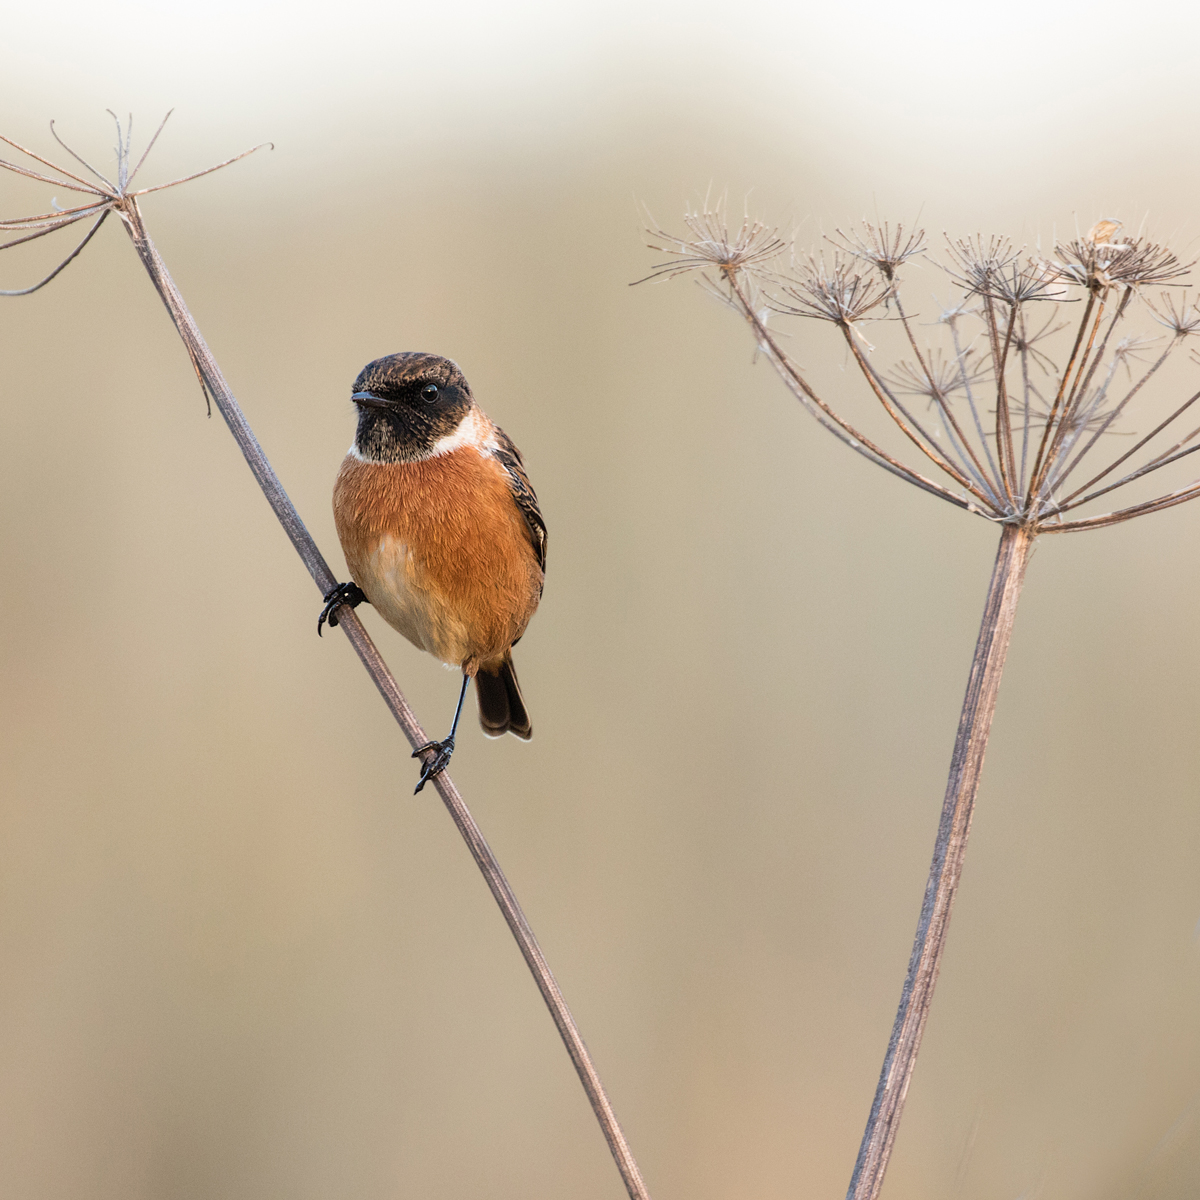 2ND STONECHAT BY JOE DOBSON DIV 2 PROJECTED